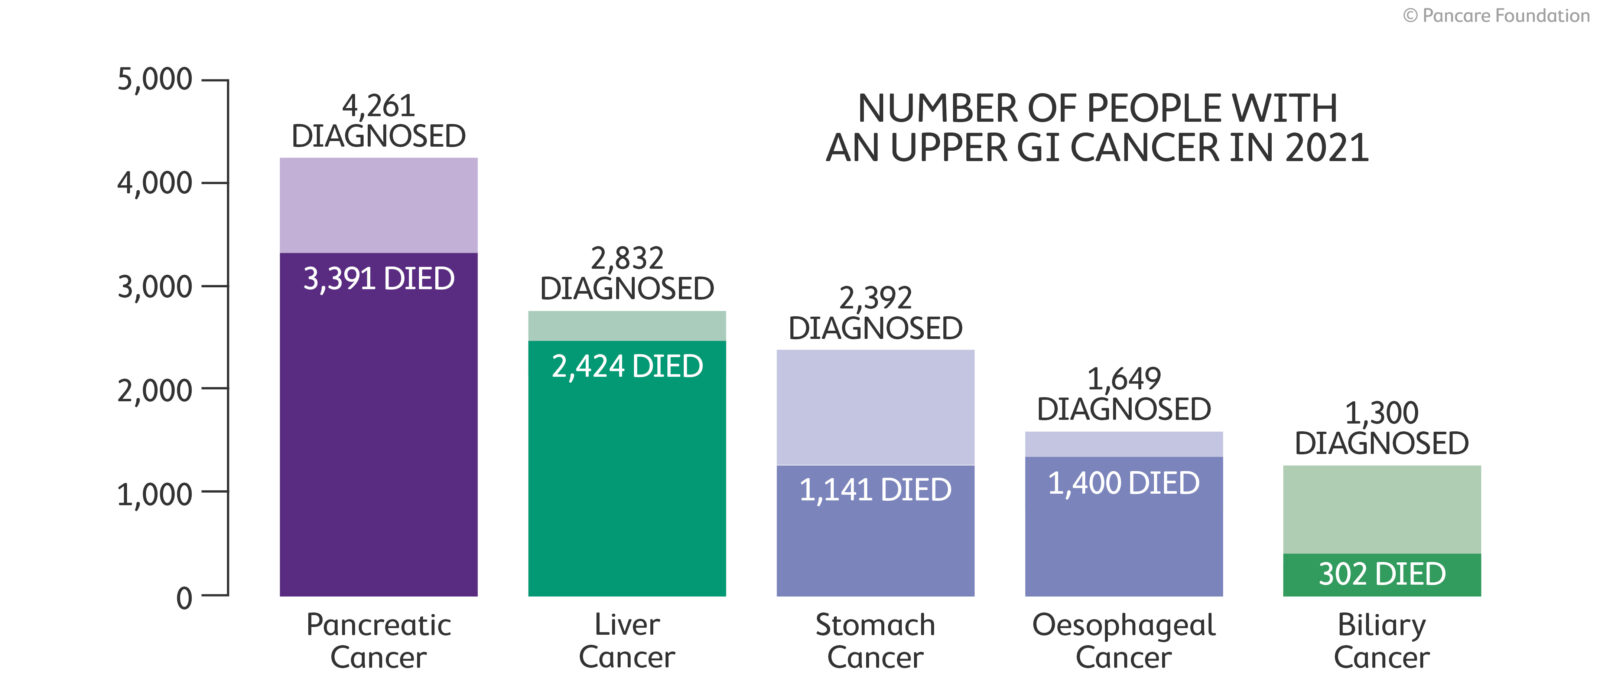 Number of people with an upper GI cancer in 2021